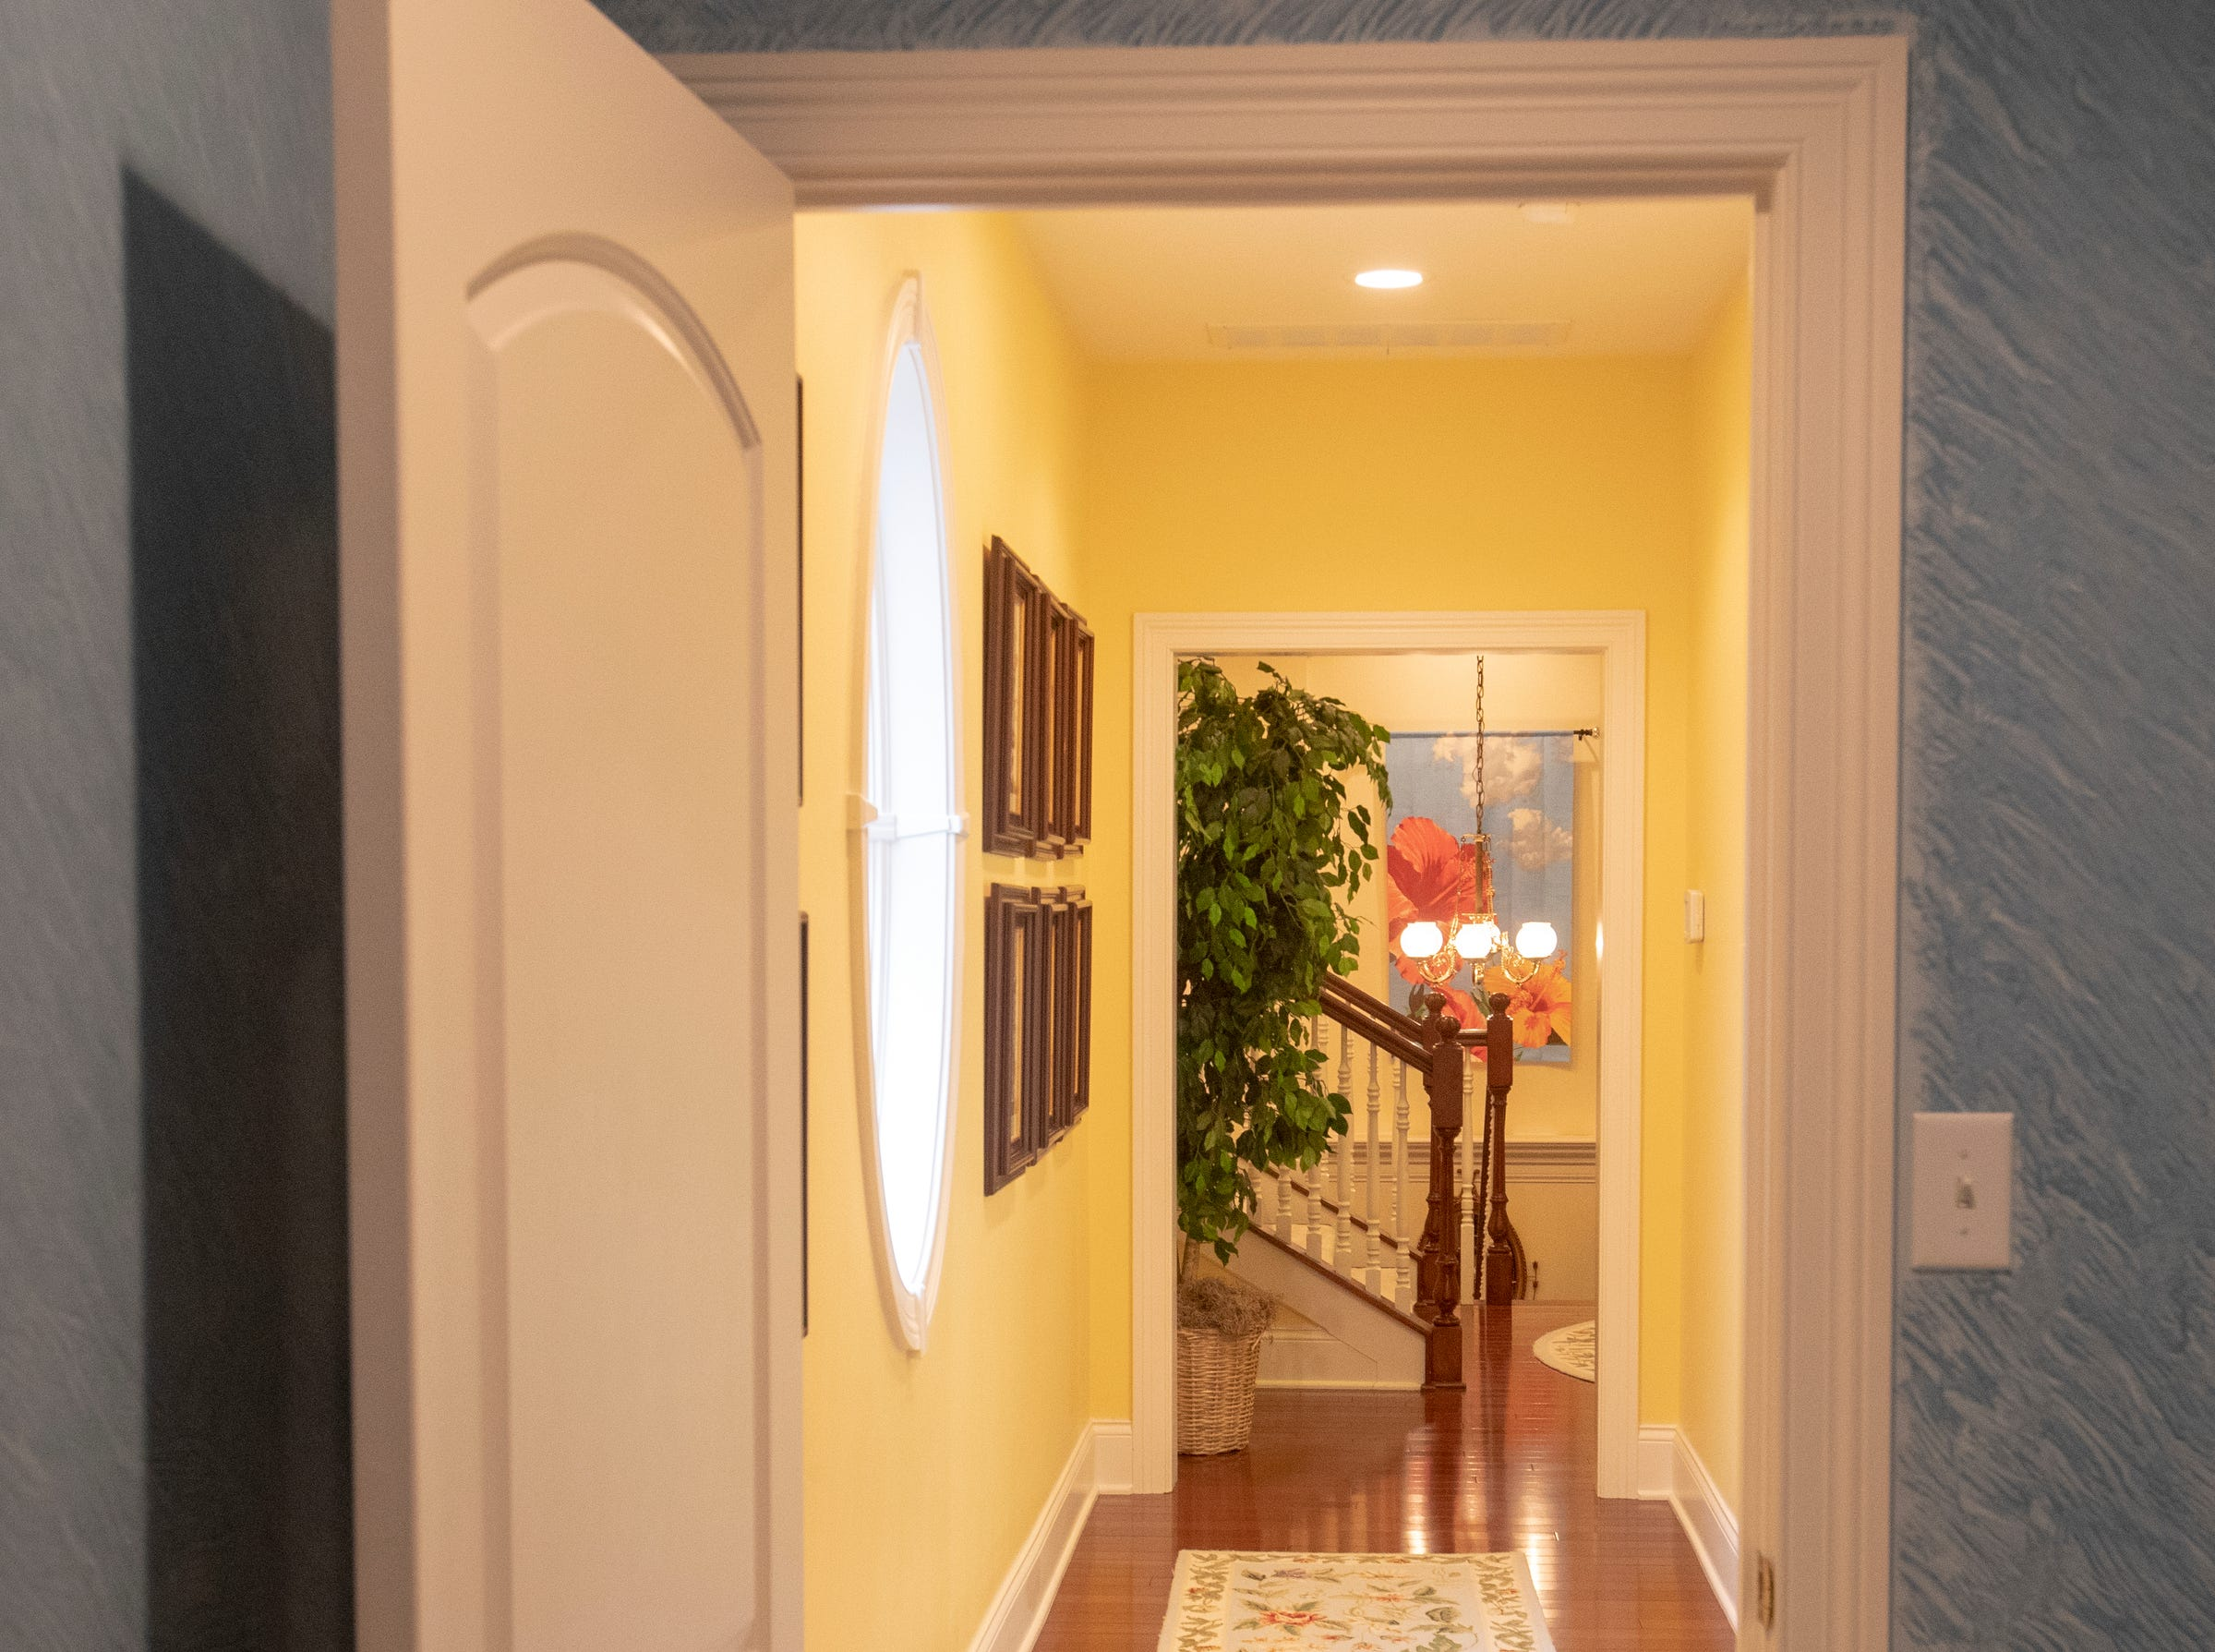 A hallway featuring natural light and hardwood floors that run throughout a thirteen-year-old Victorian home in the Village of West Clay, Carmel, March 20, 2019. The house includes 16 rooms with five bedrooms, 8,348 square feet, and is listed at $1.275 million.